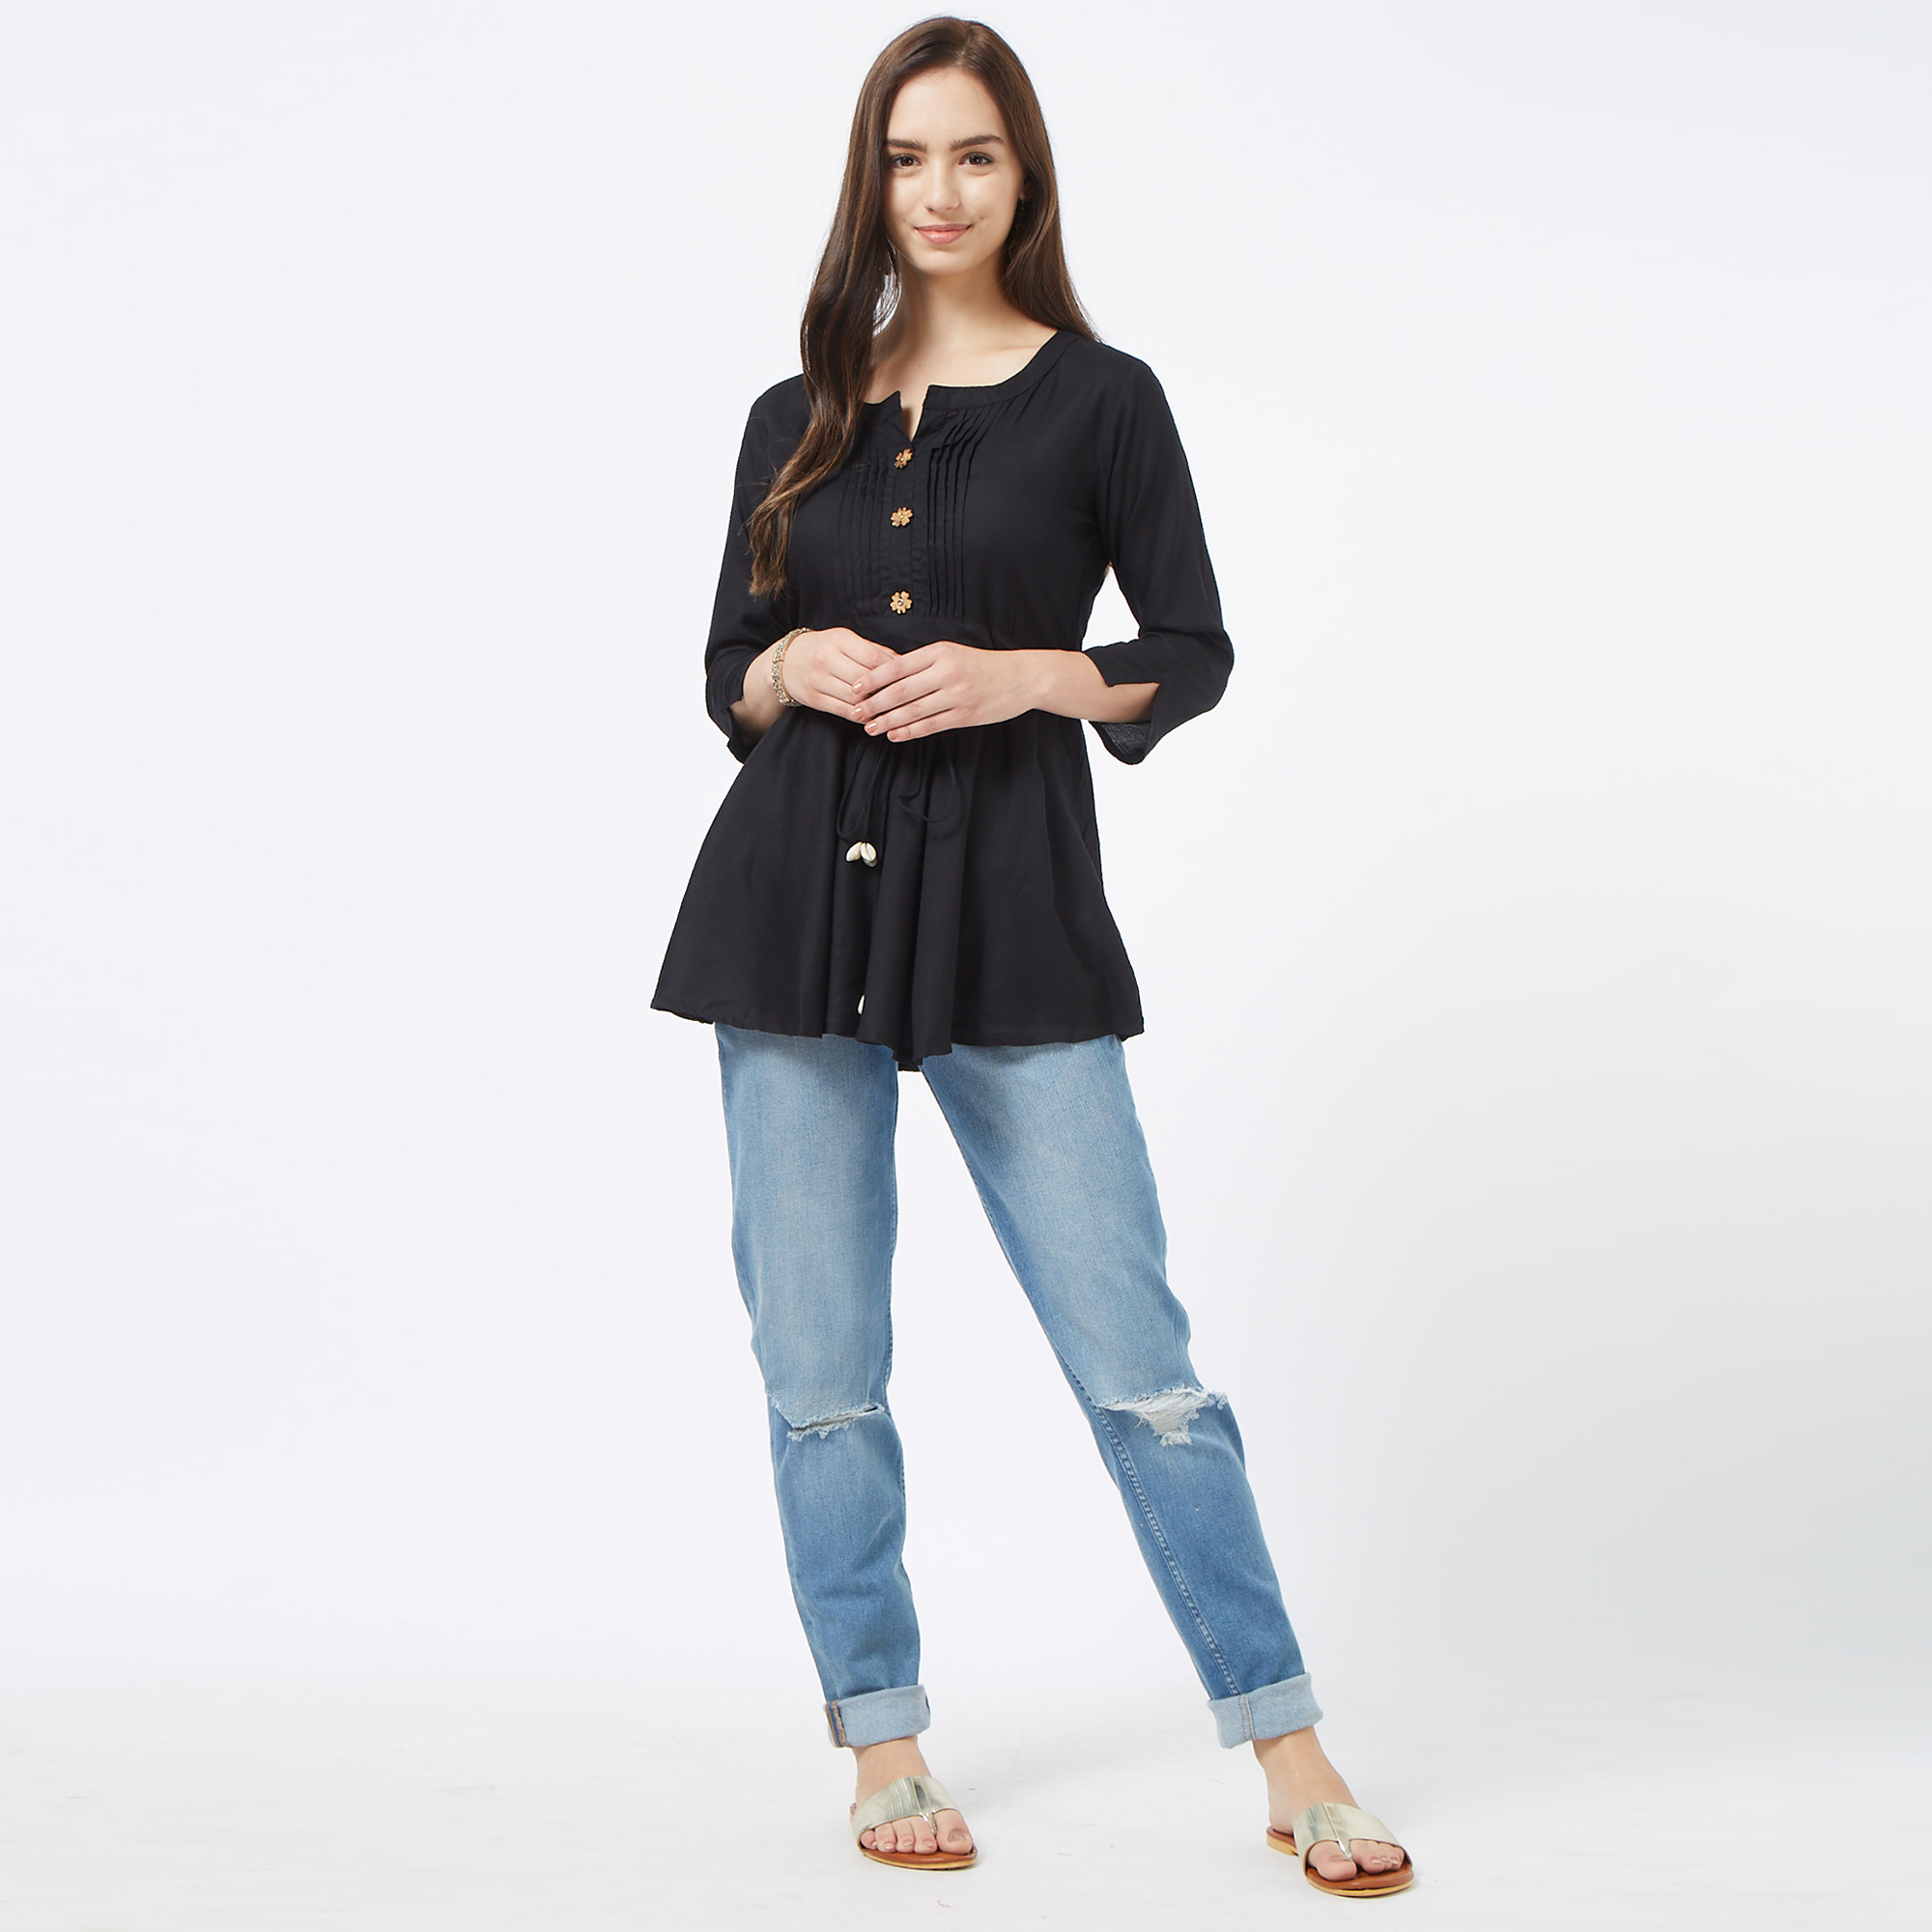 Radiant Black Colored Casual Cotton Short Kurti